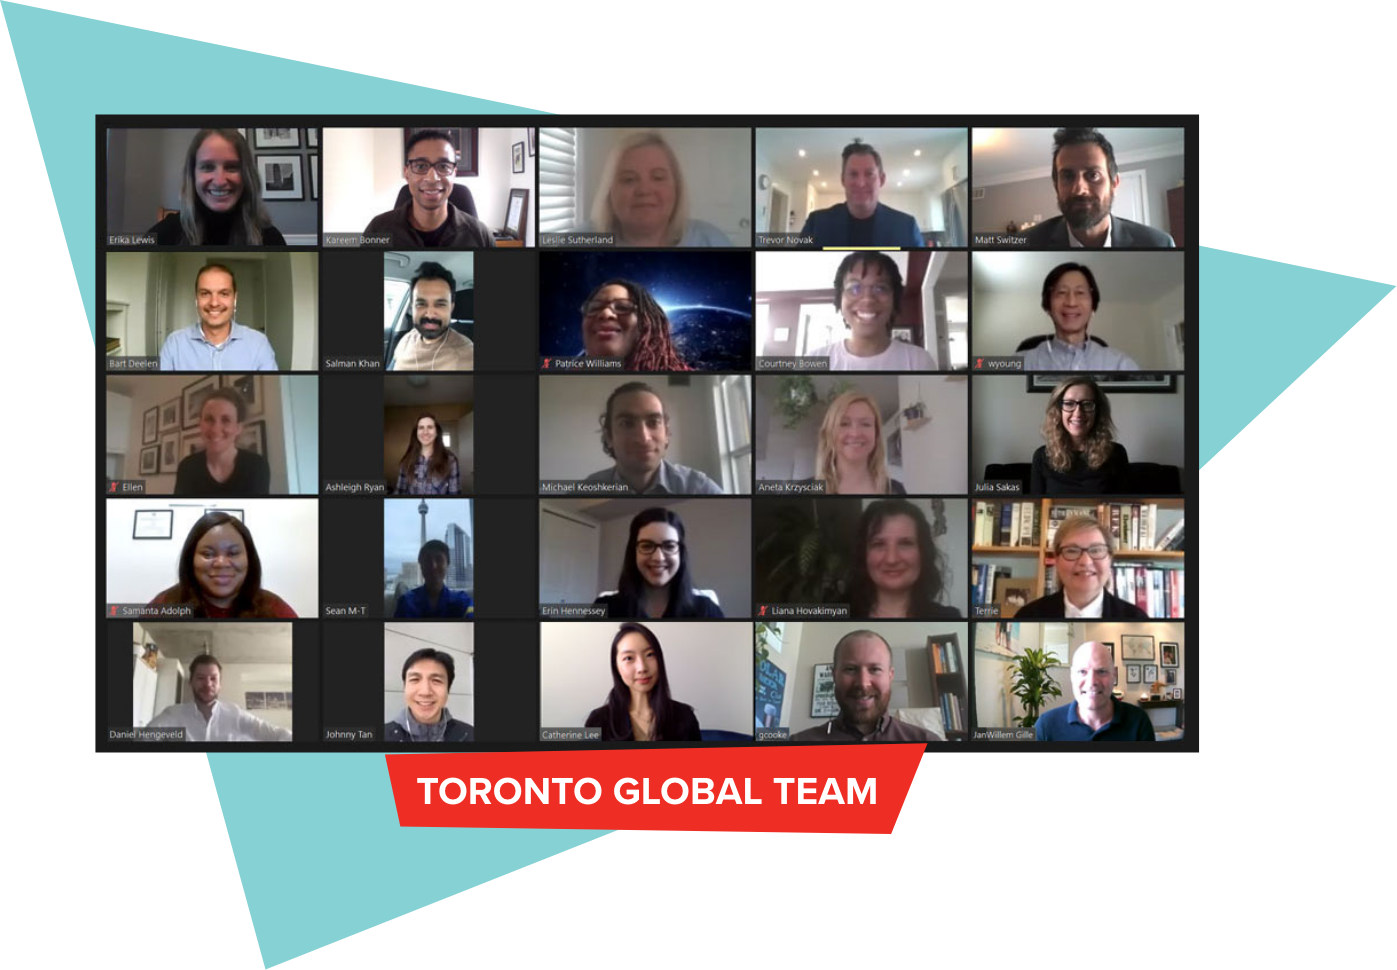 toronto global team image